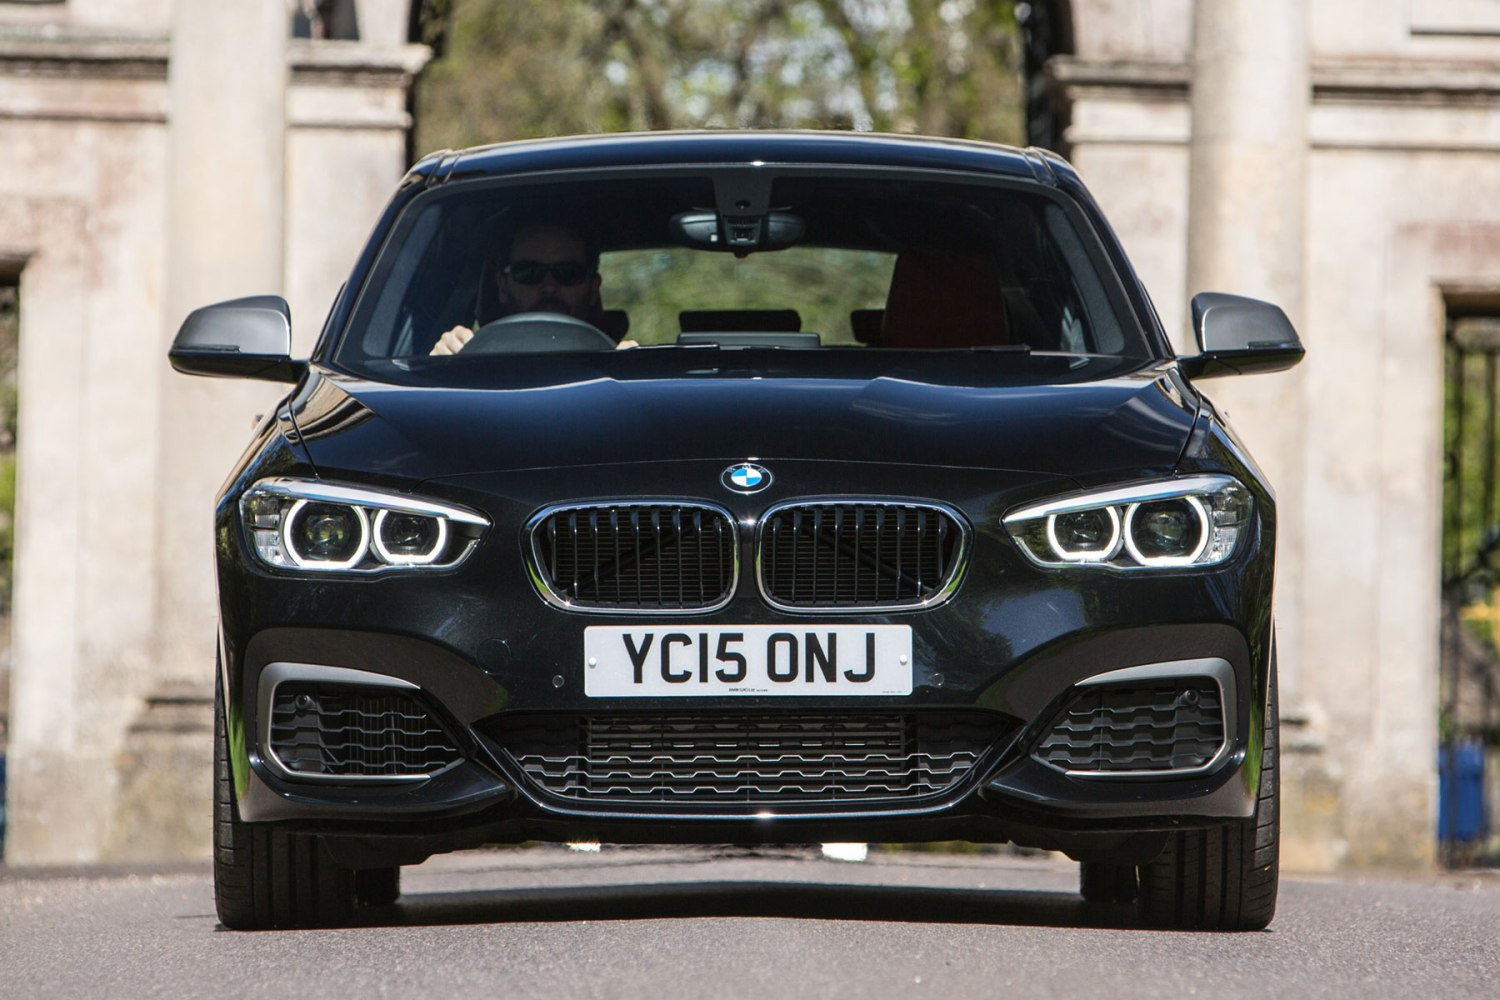 BMW slammed for exaggerating claims over its high-beam assist technology